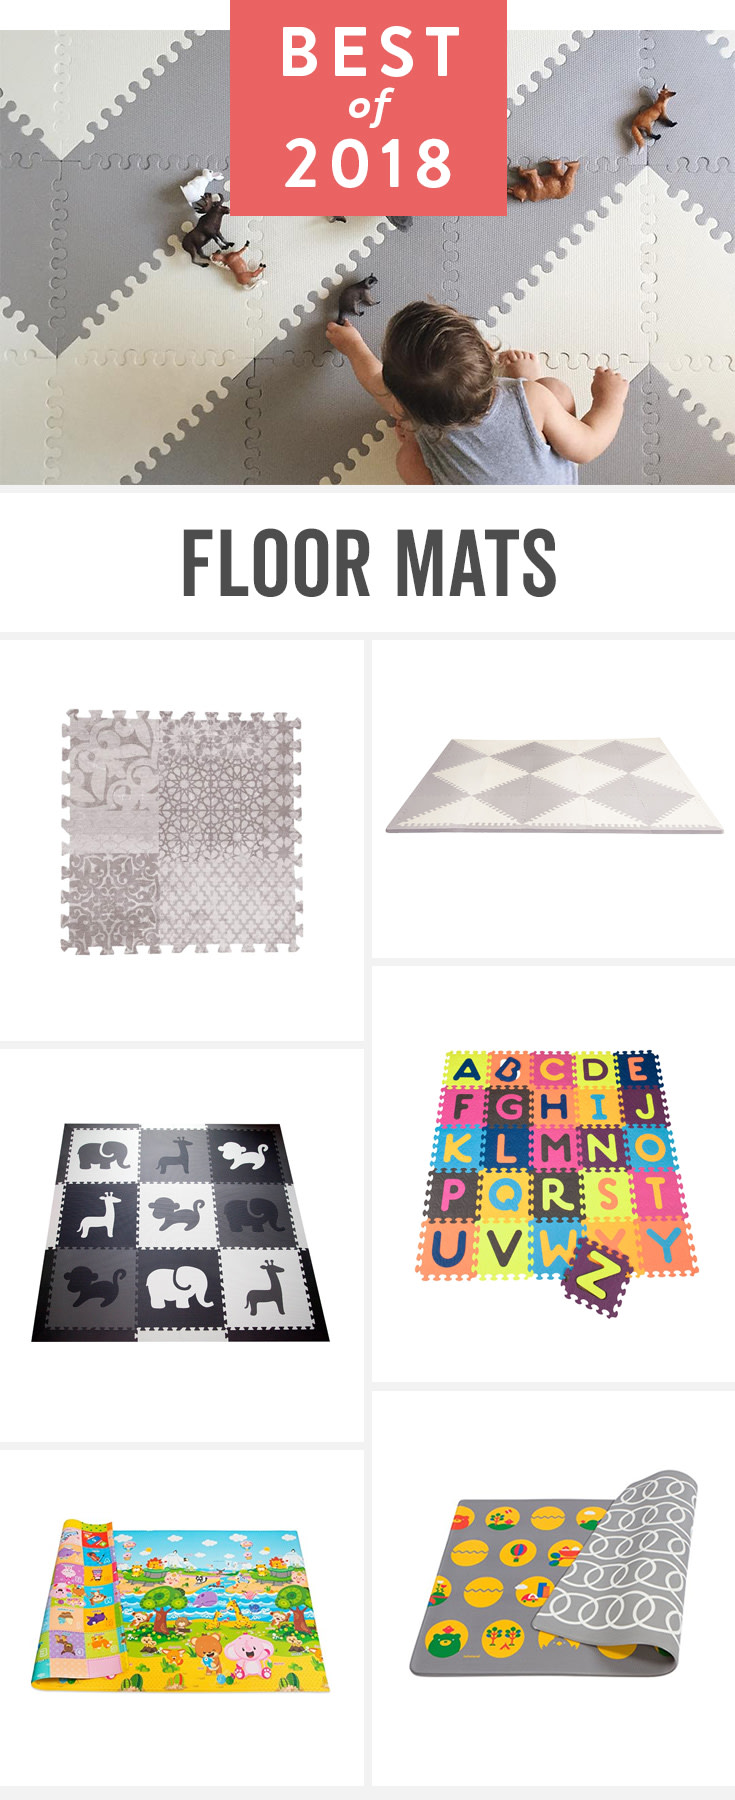 These mats provide a soft spot for little ones to play—and they actually look good on your floors!